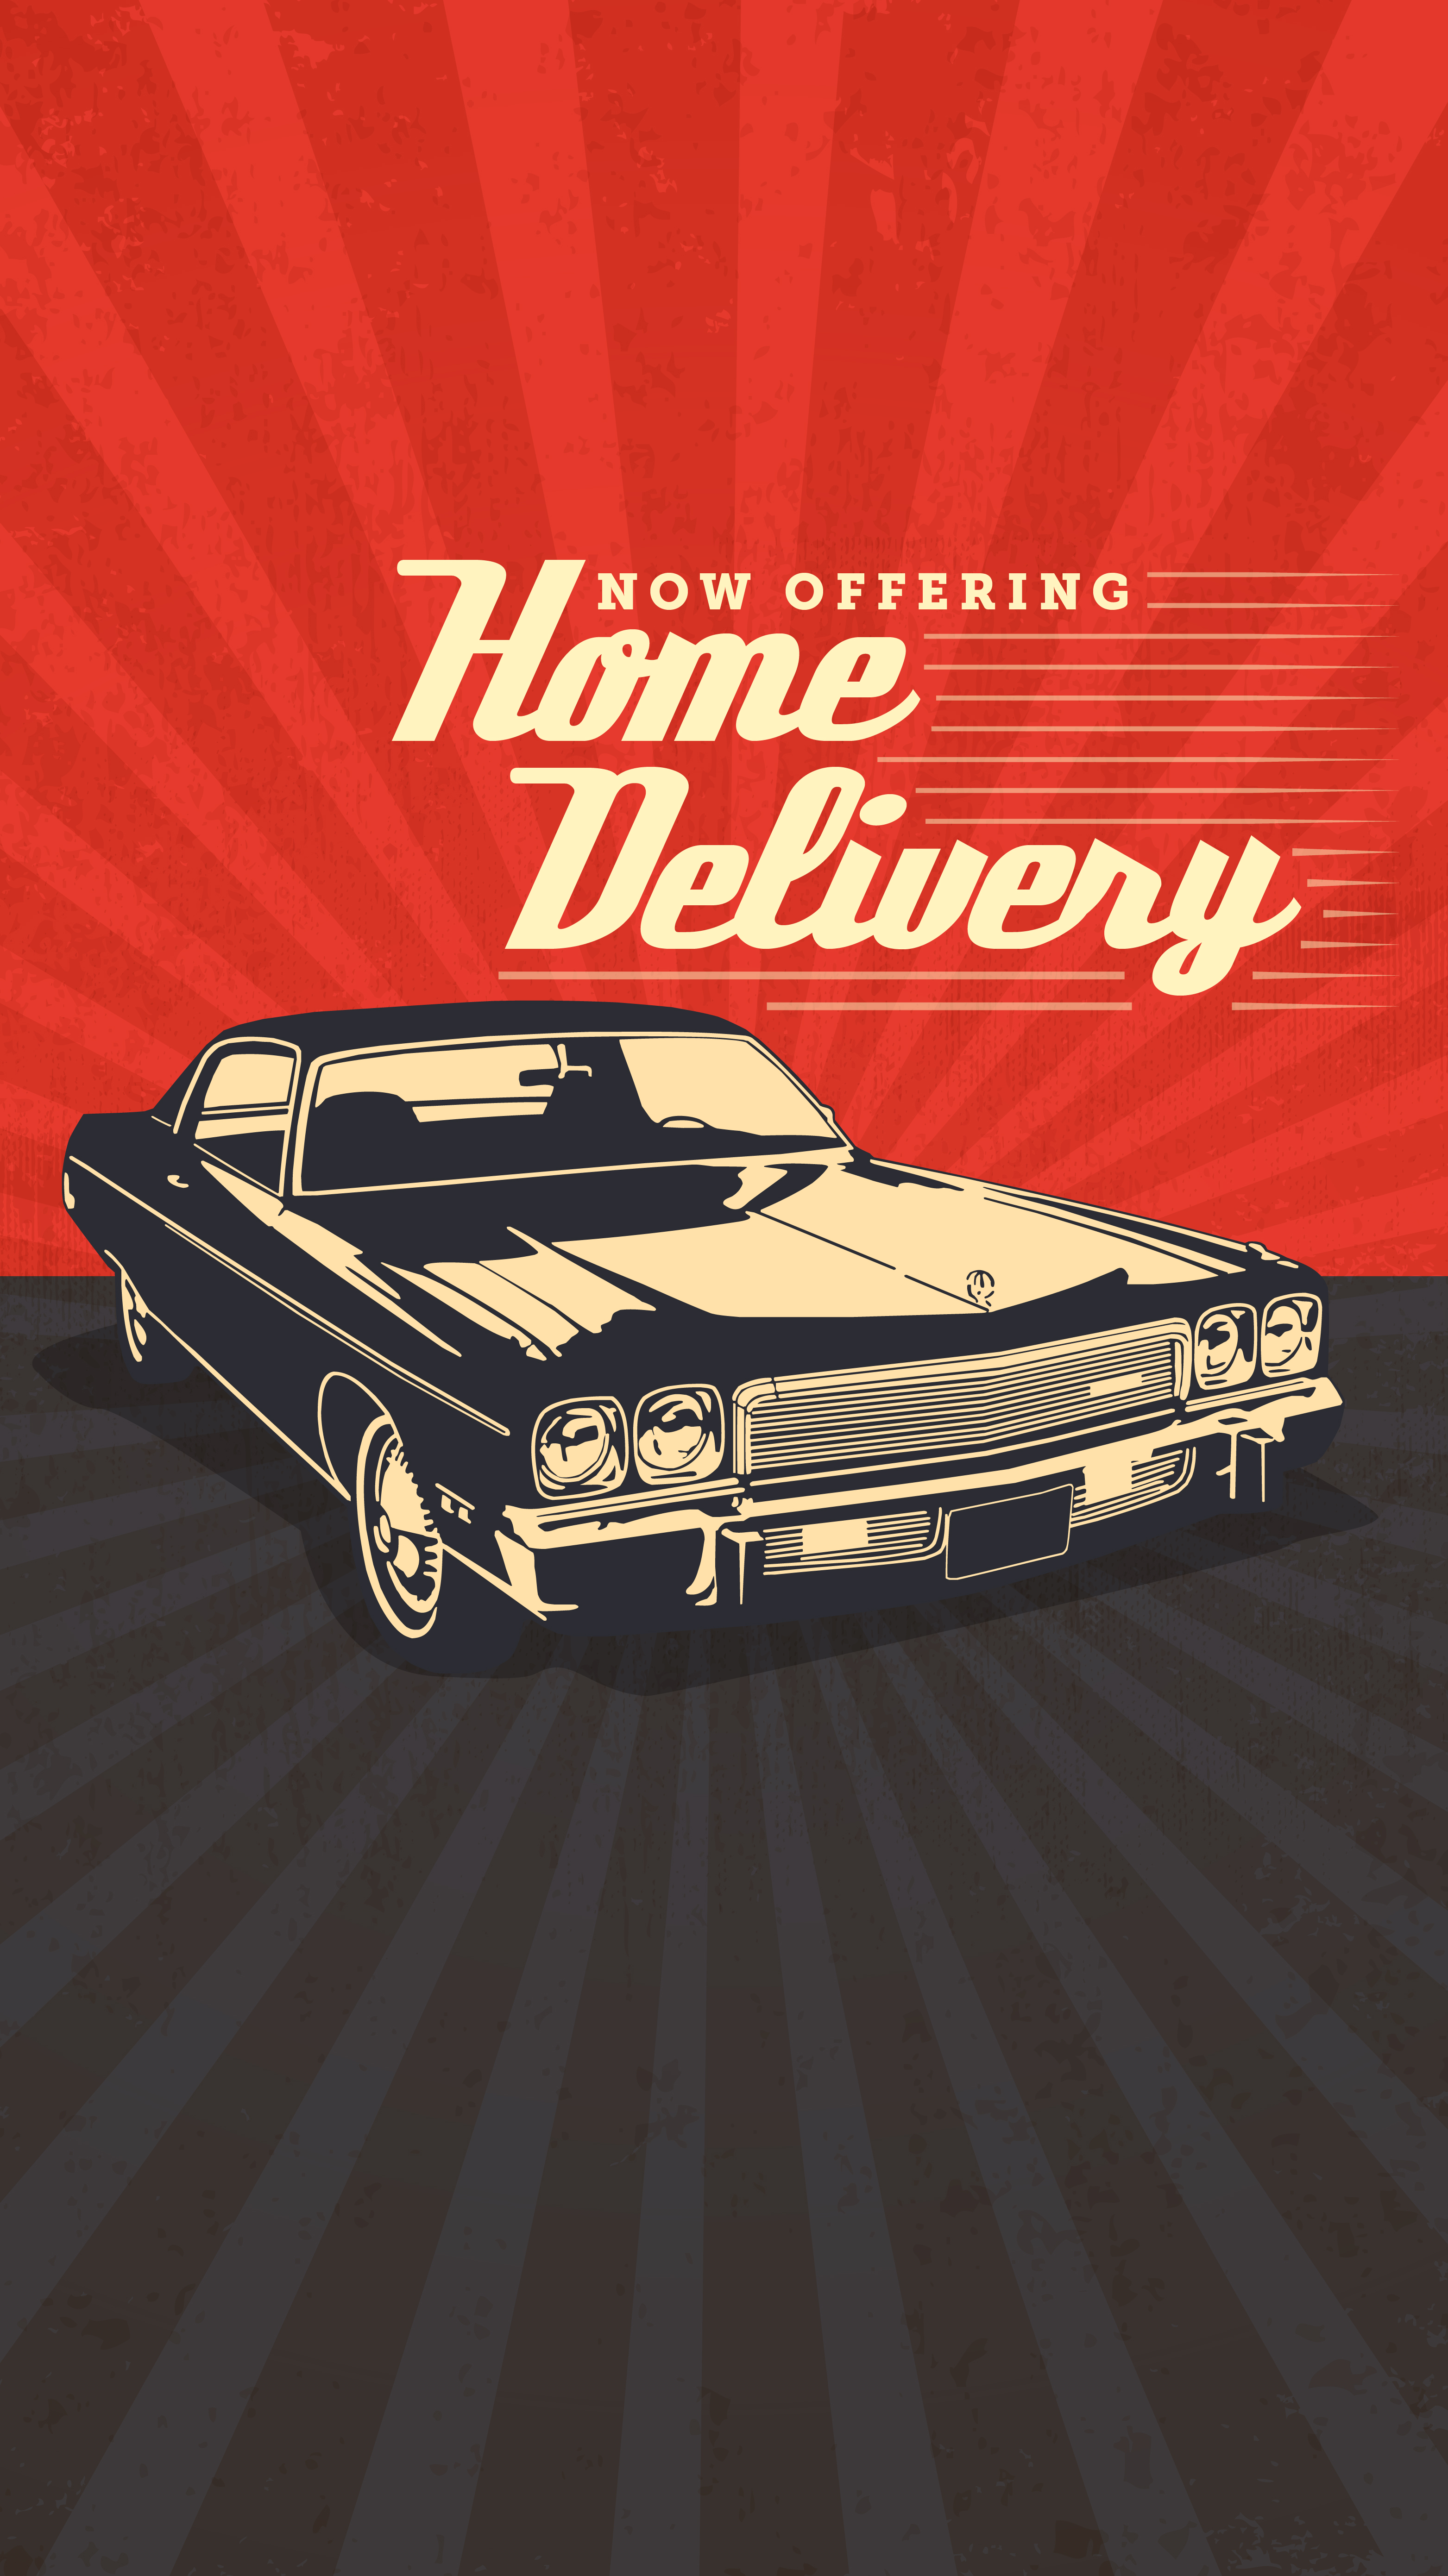 HOME DELIVERY now available!